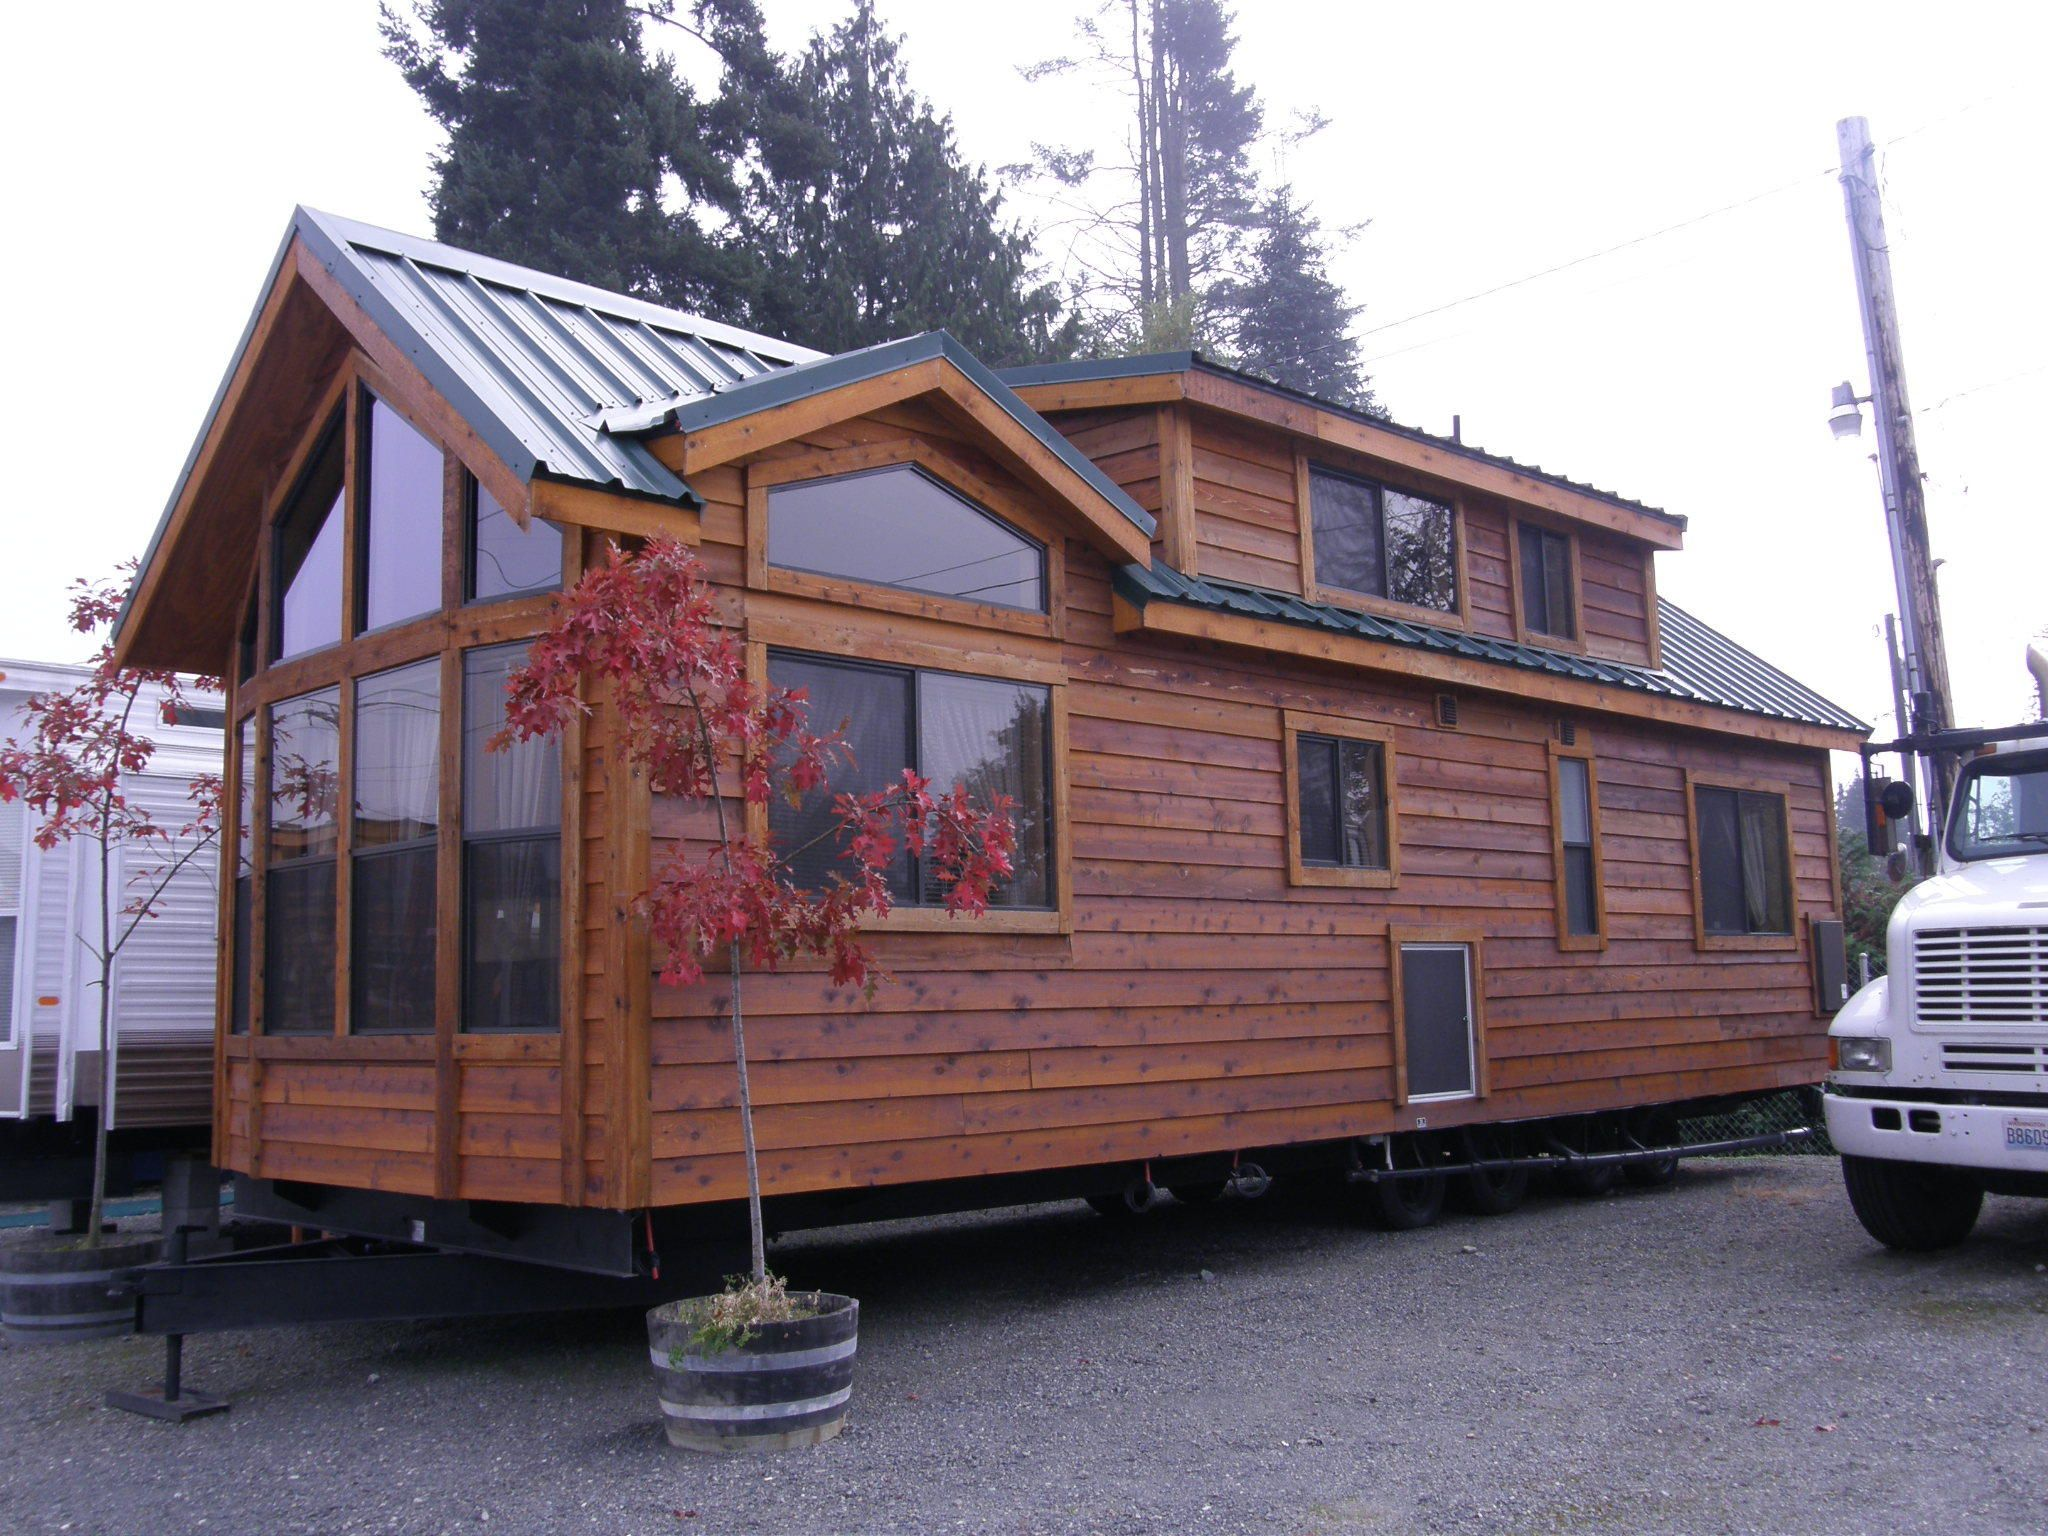 House On Wheels For Sale Visit Open Big Tiny House On Wheels At - house on wheels